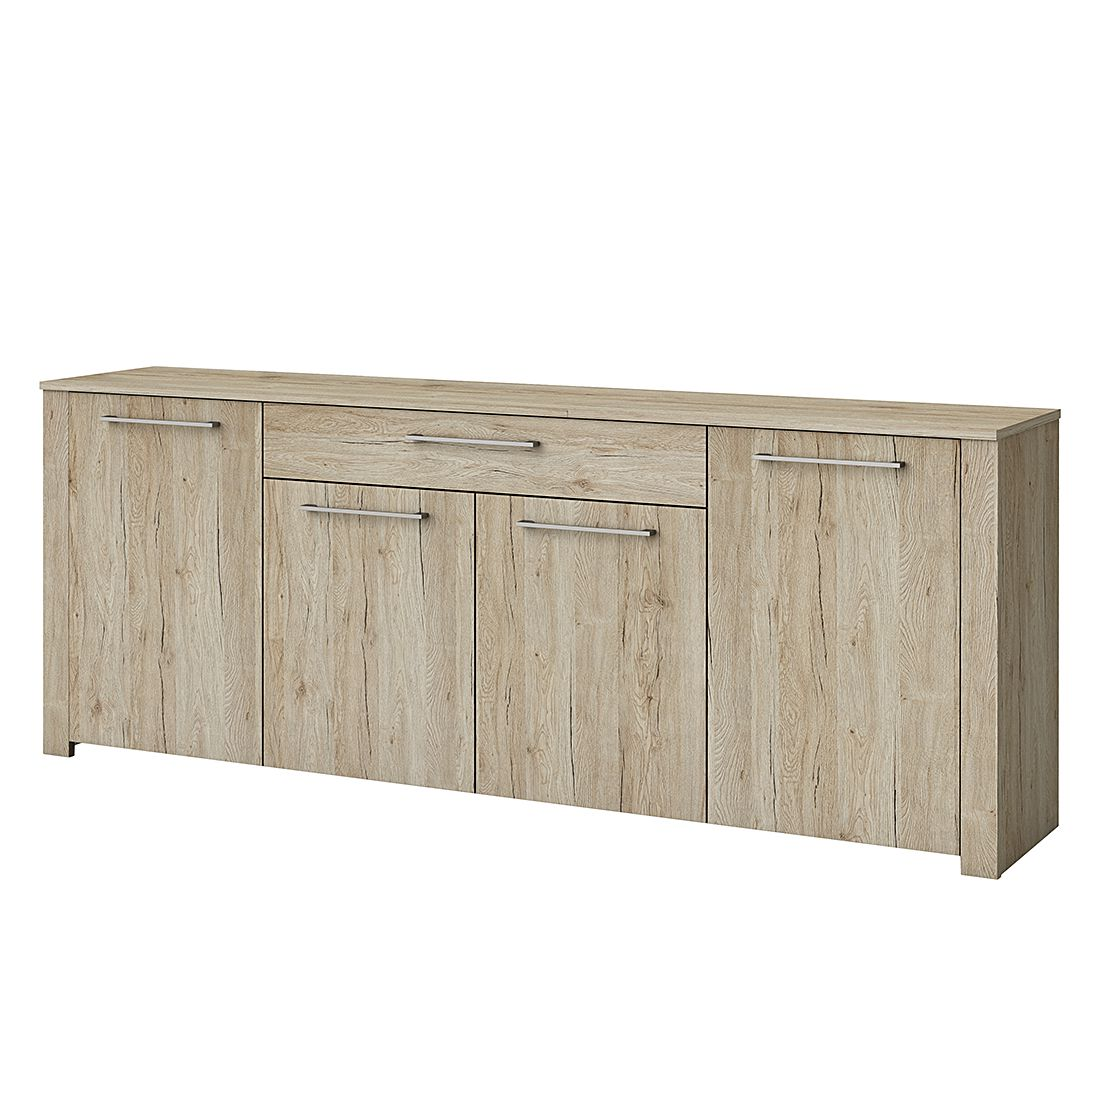 sideboard constanzia eiche sanremo dekor mooved g nstig online kaufen. Black Bedroom Furniture Sets. Home Design Ideas